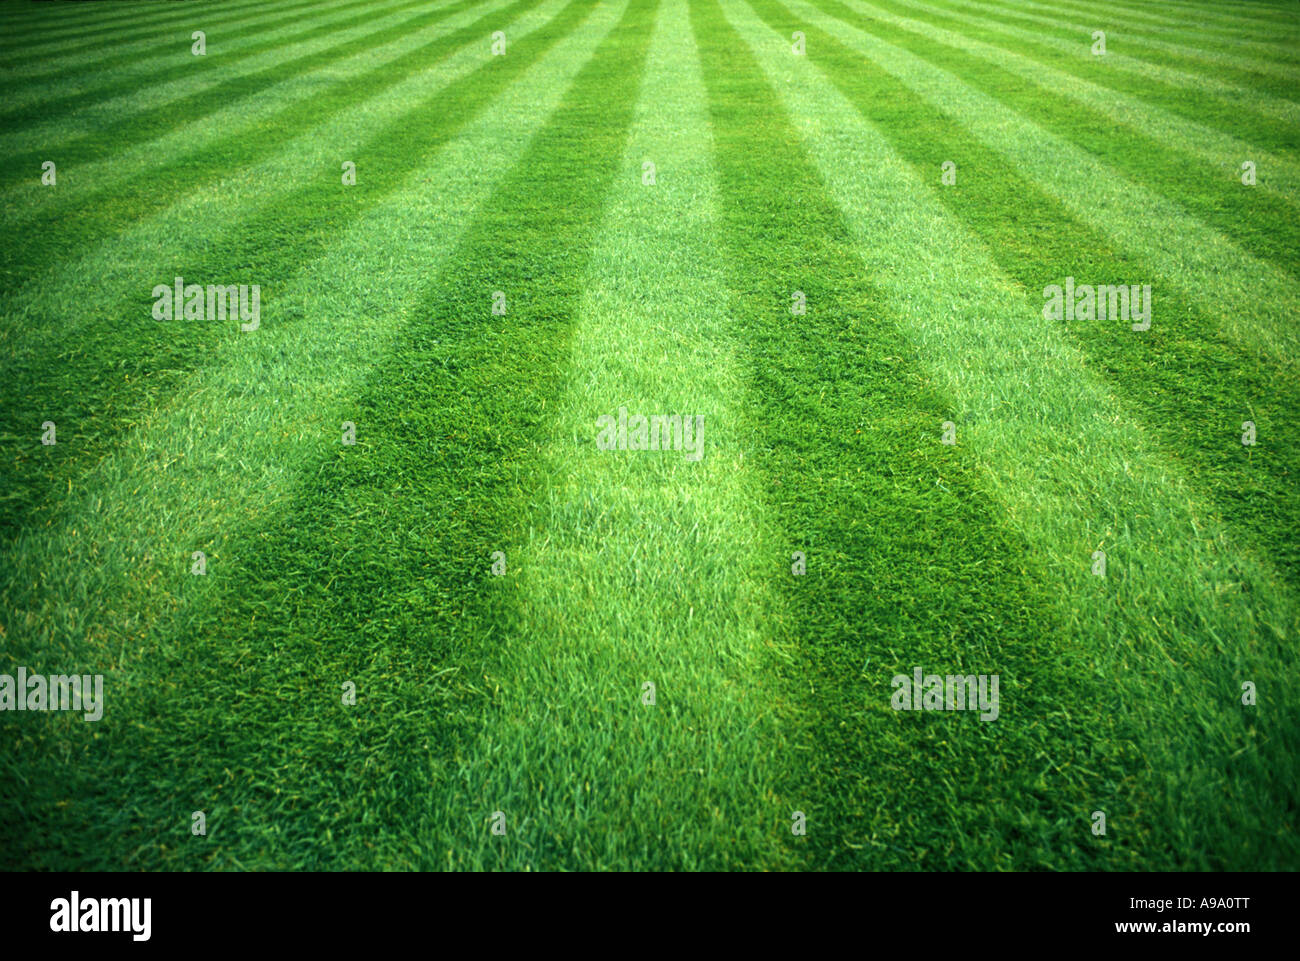 MANICURED GREEN LAWN STRIPES ENGLAND UK - Stock Image